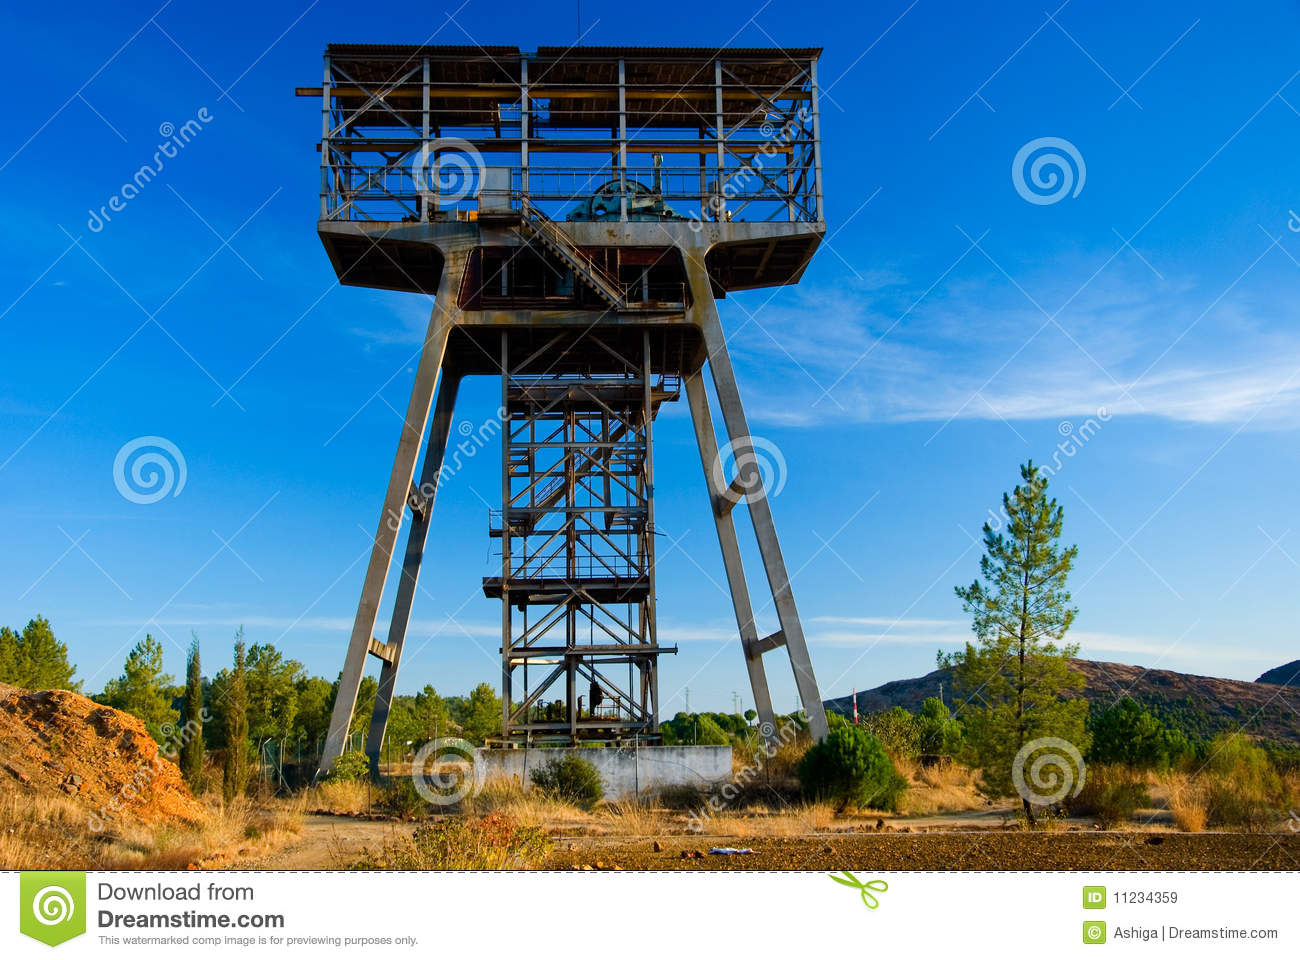 Beautiful old mine tower in Spain.